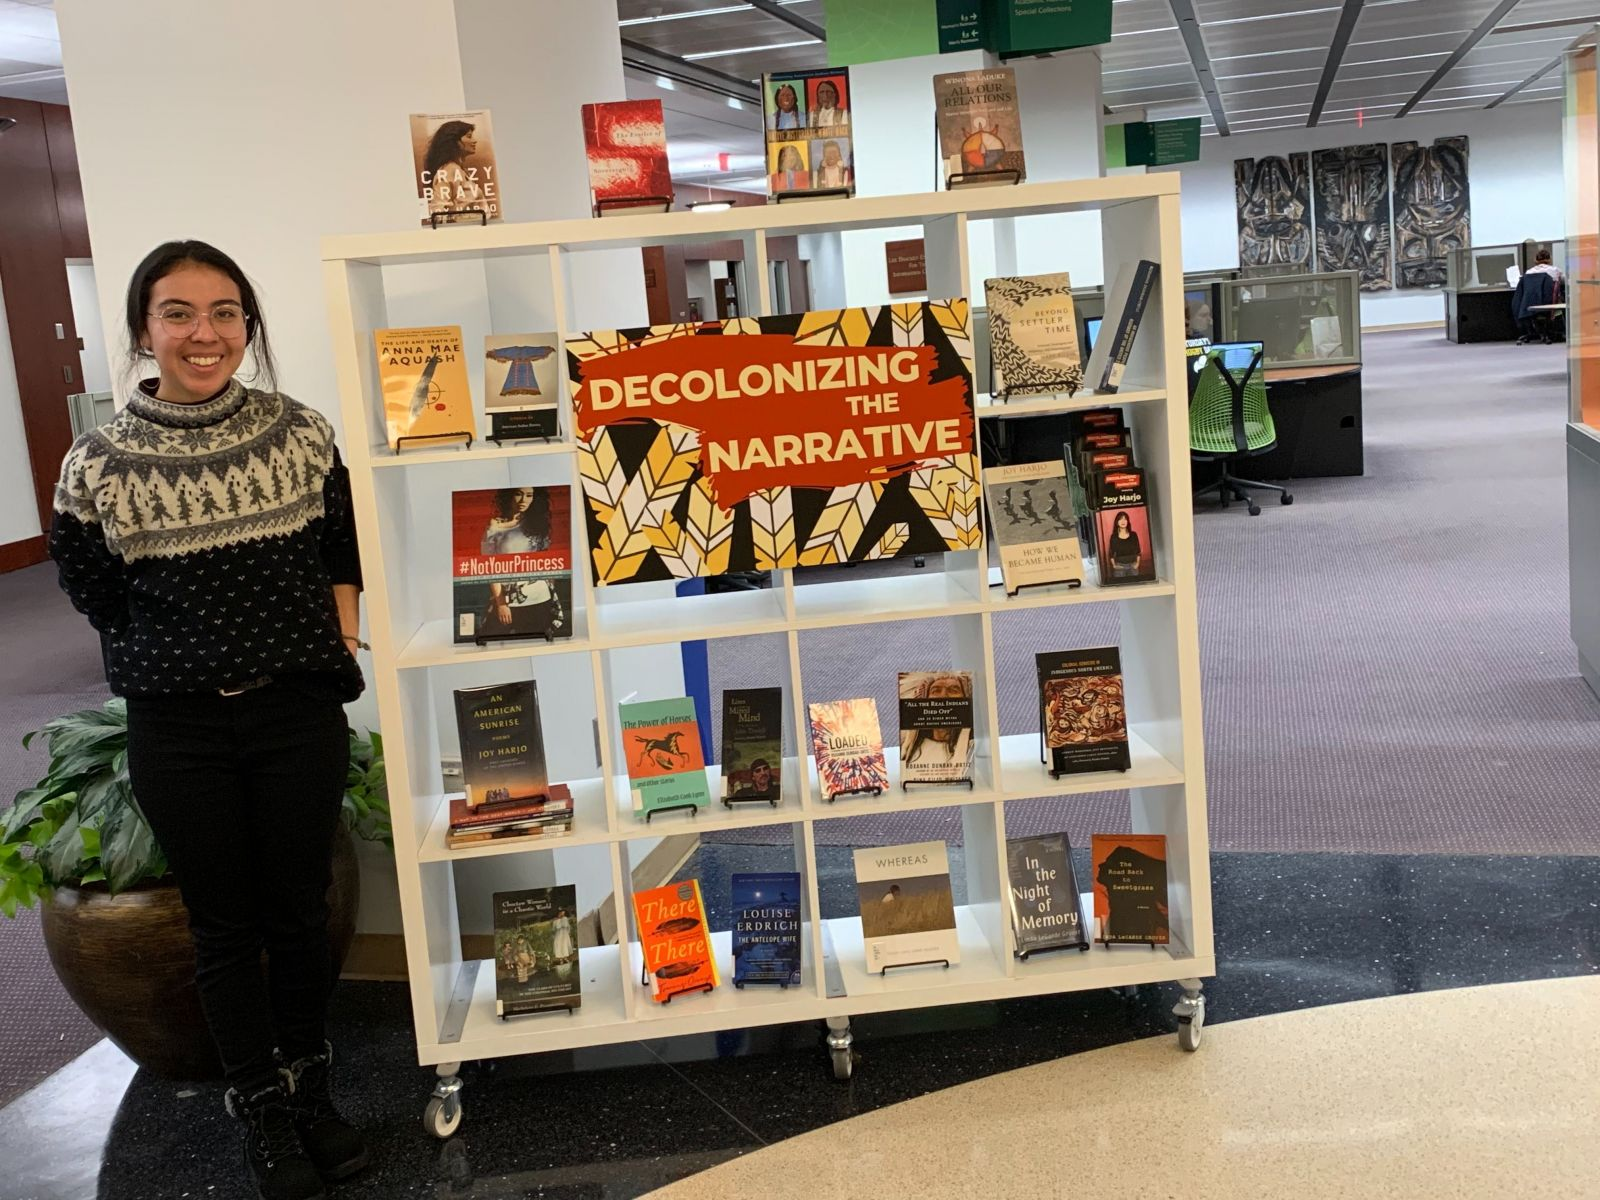 yitazba standing by book display